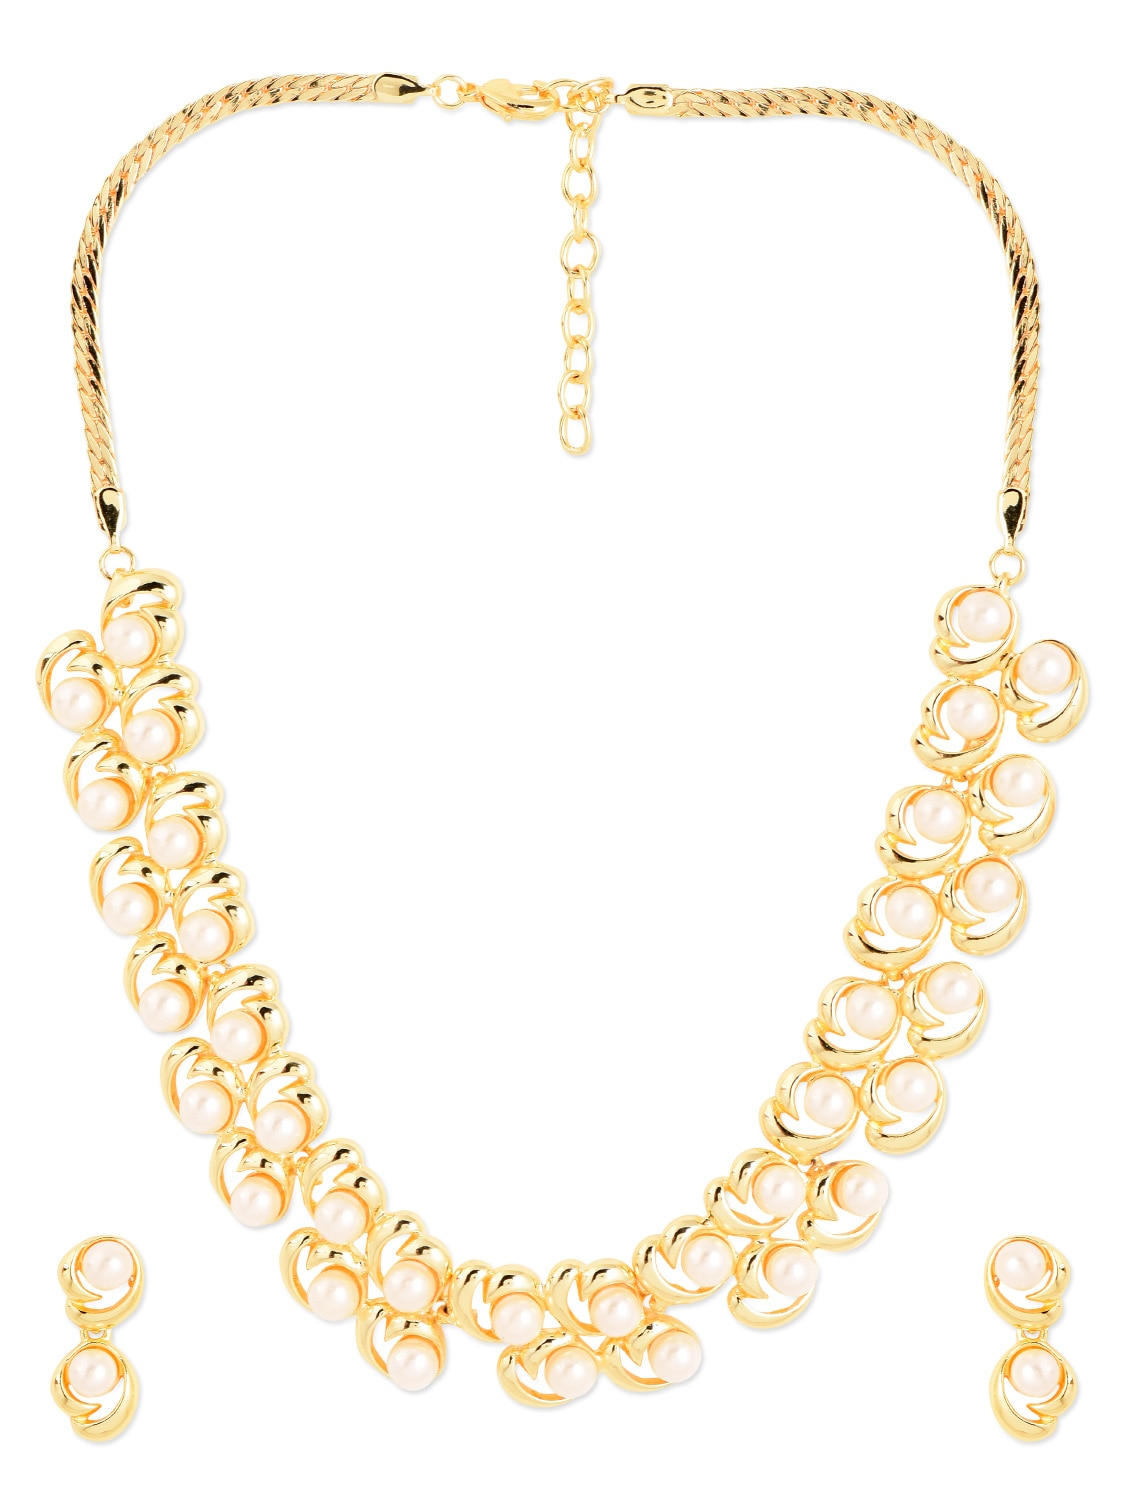 Gold Metal Alloy  & Pearl Beads Necklace Set - Golden Peacock